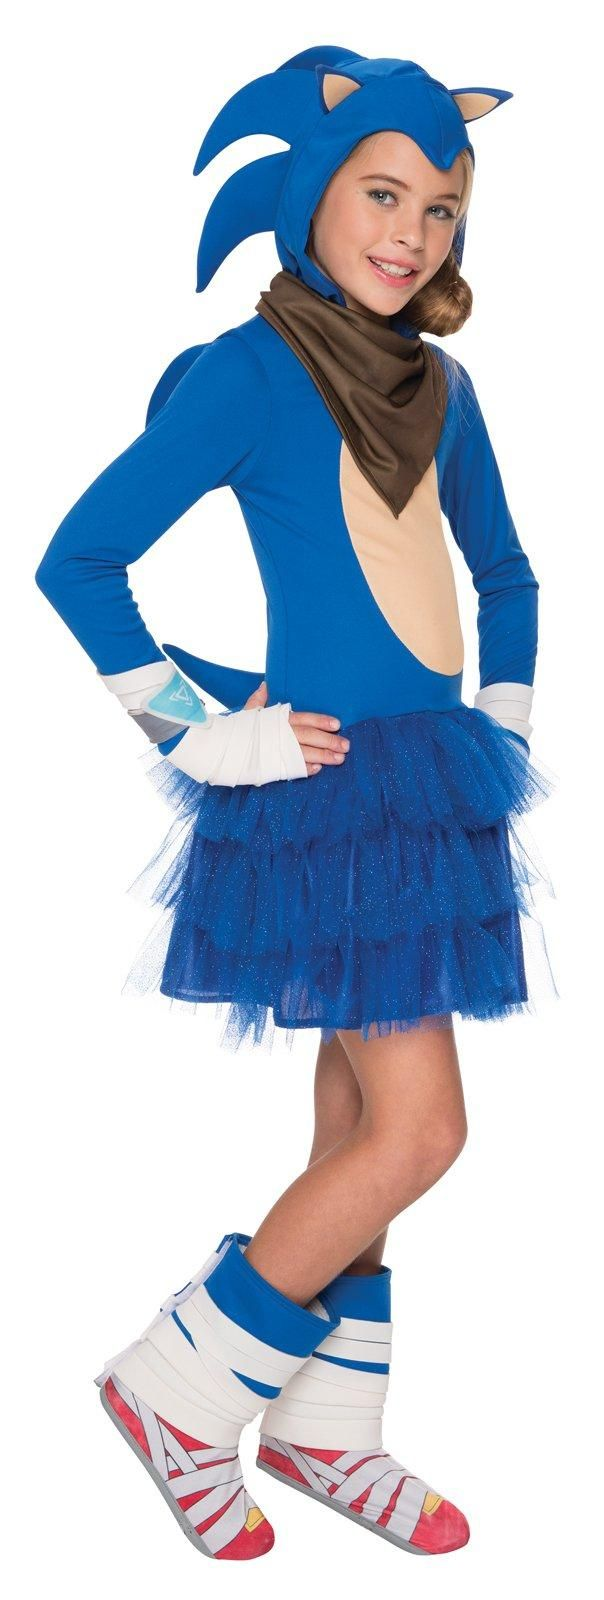 Sonic Boom: Sonic Costume For Girls from CostumeExpress.com